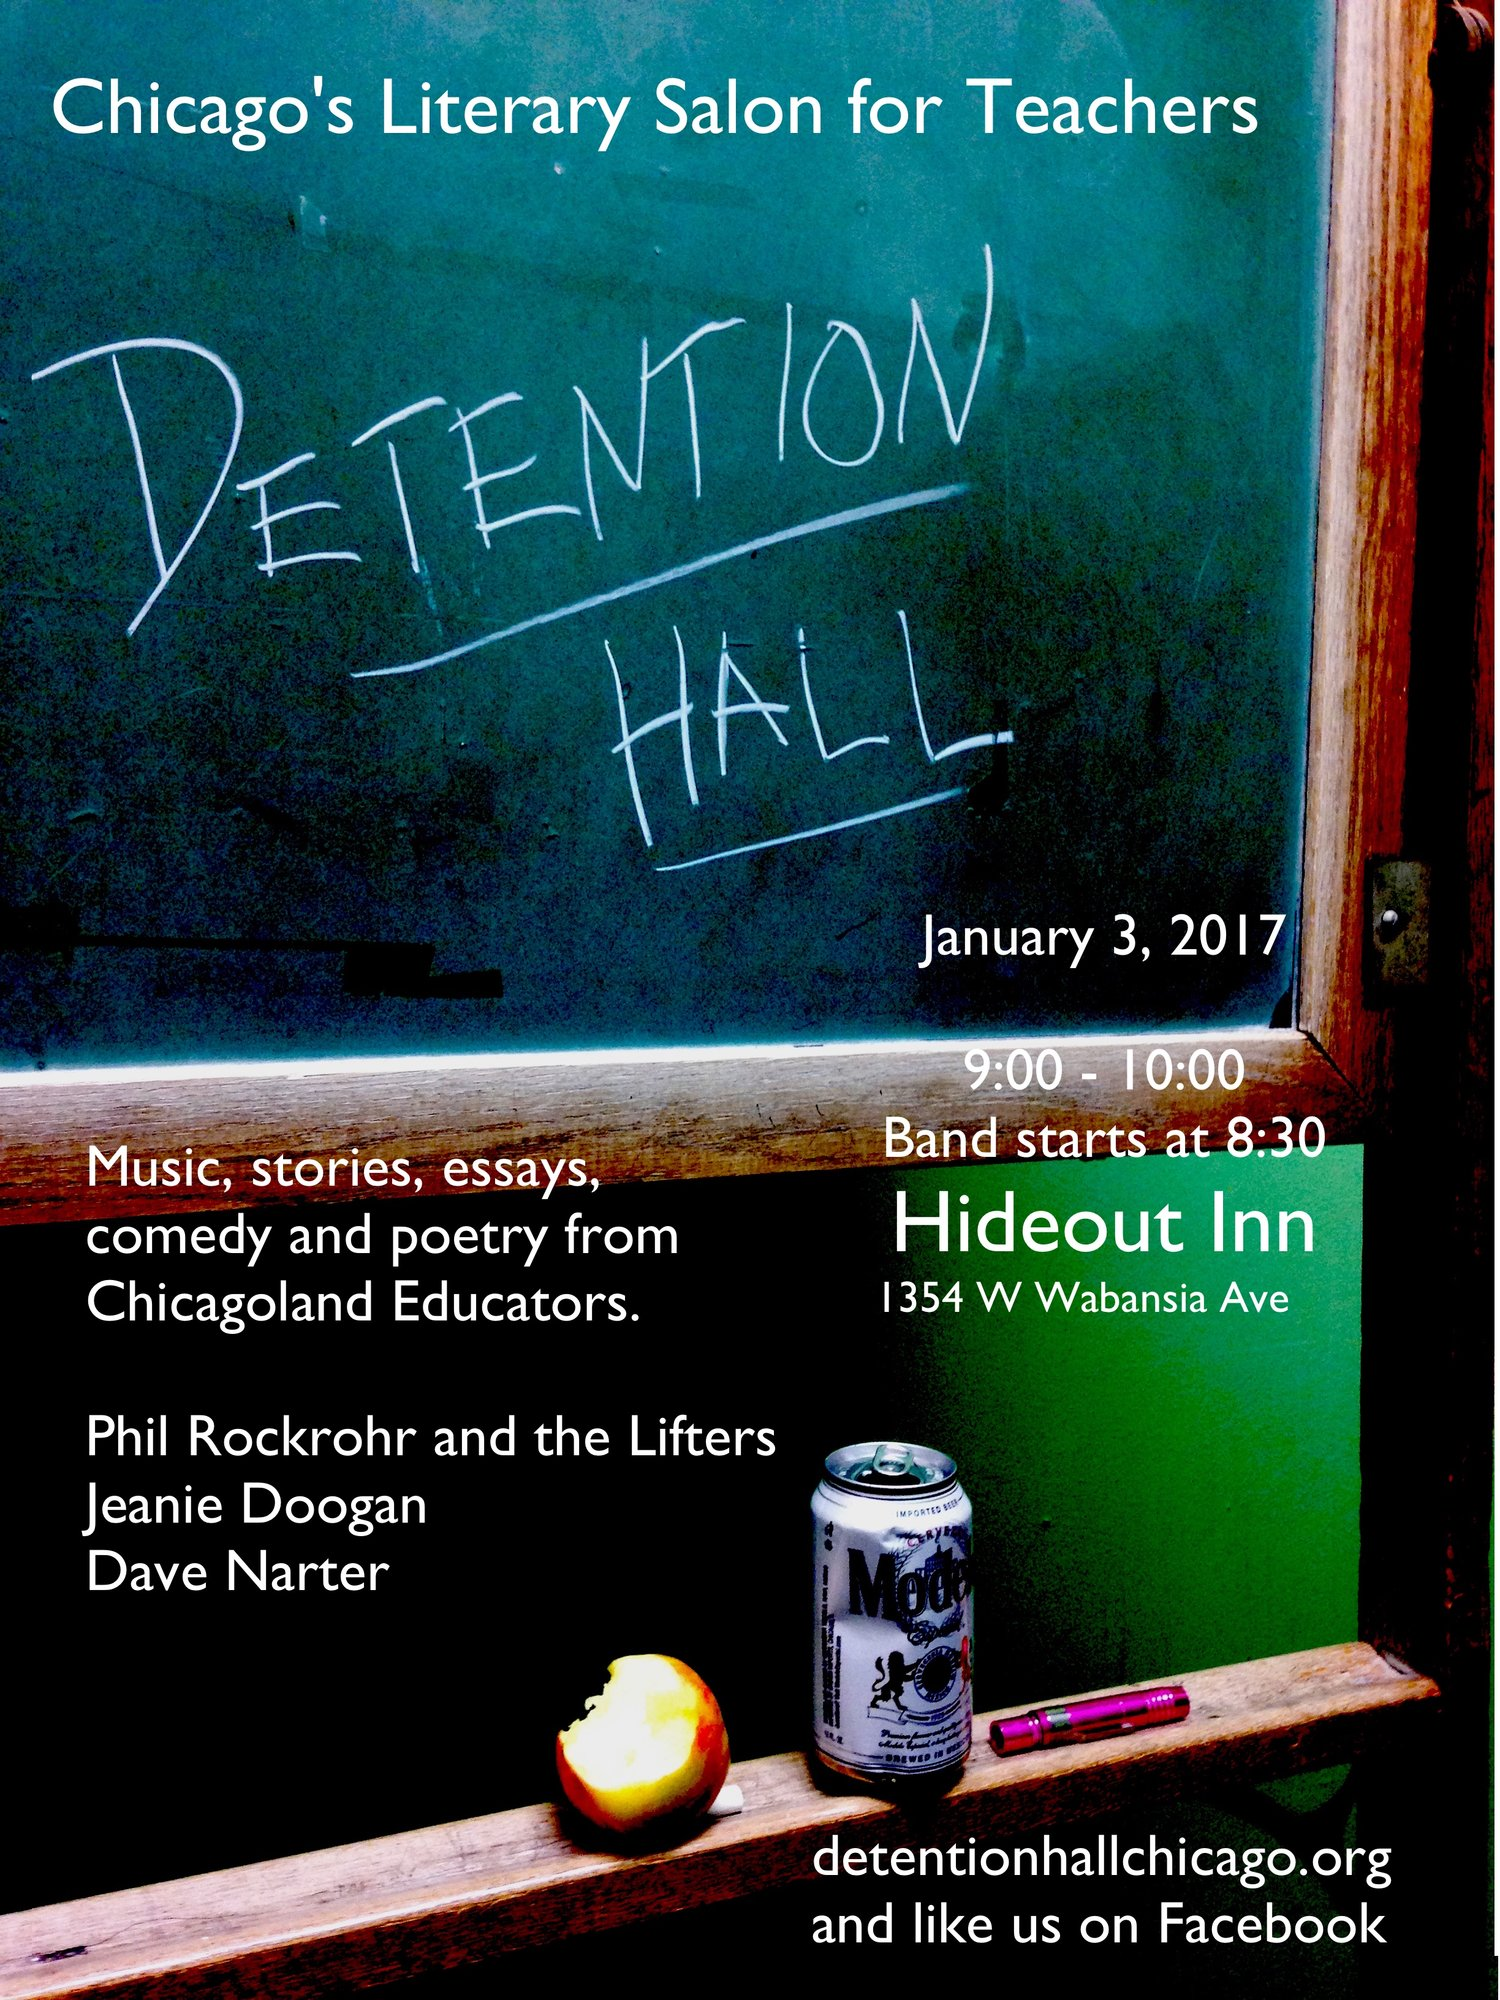 The Detention Hall